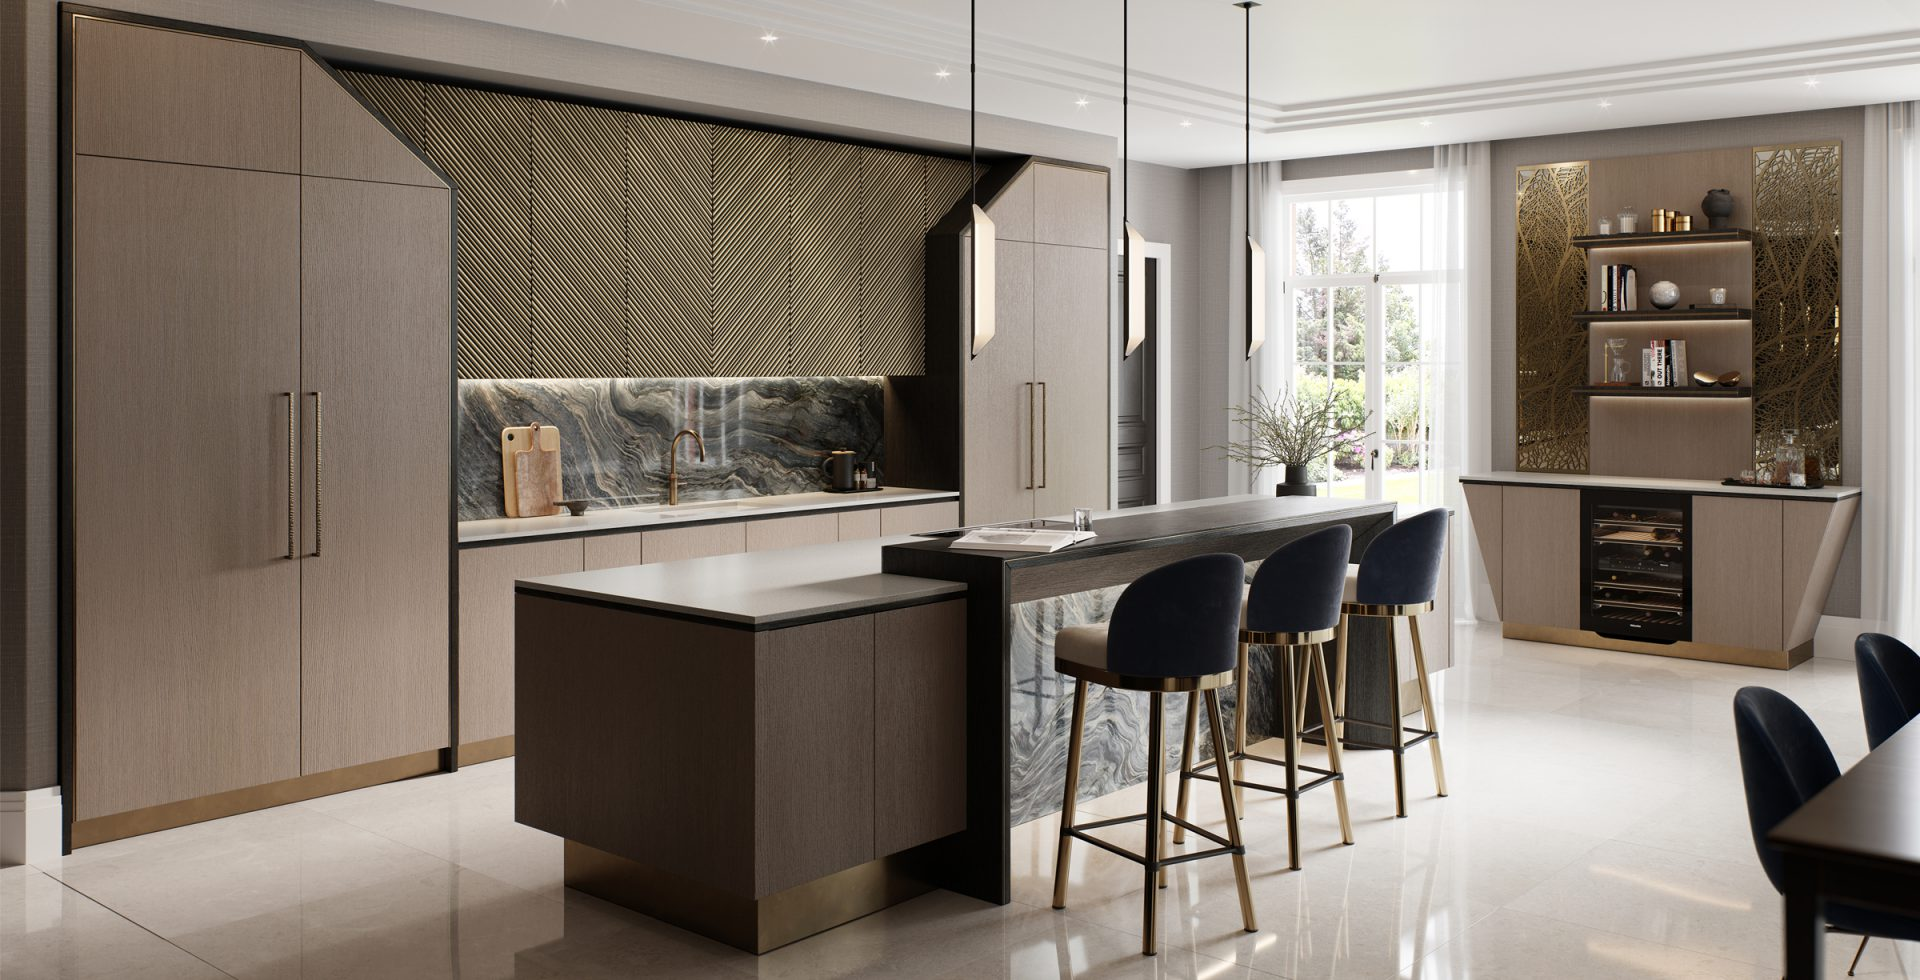 contemporary kitchen with island and bar